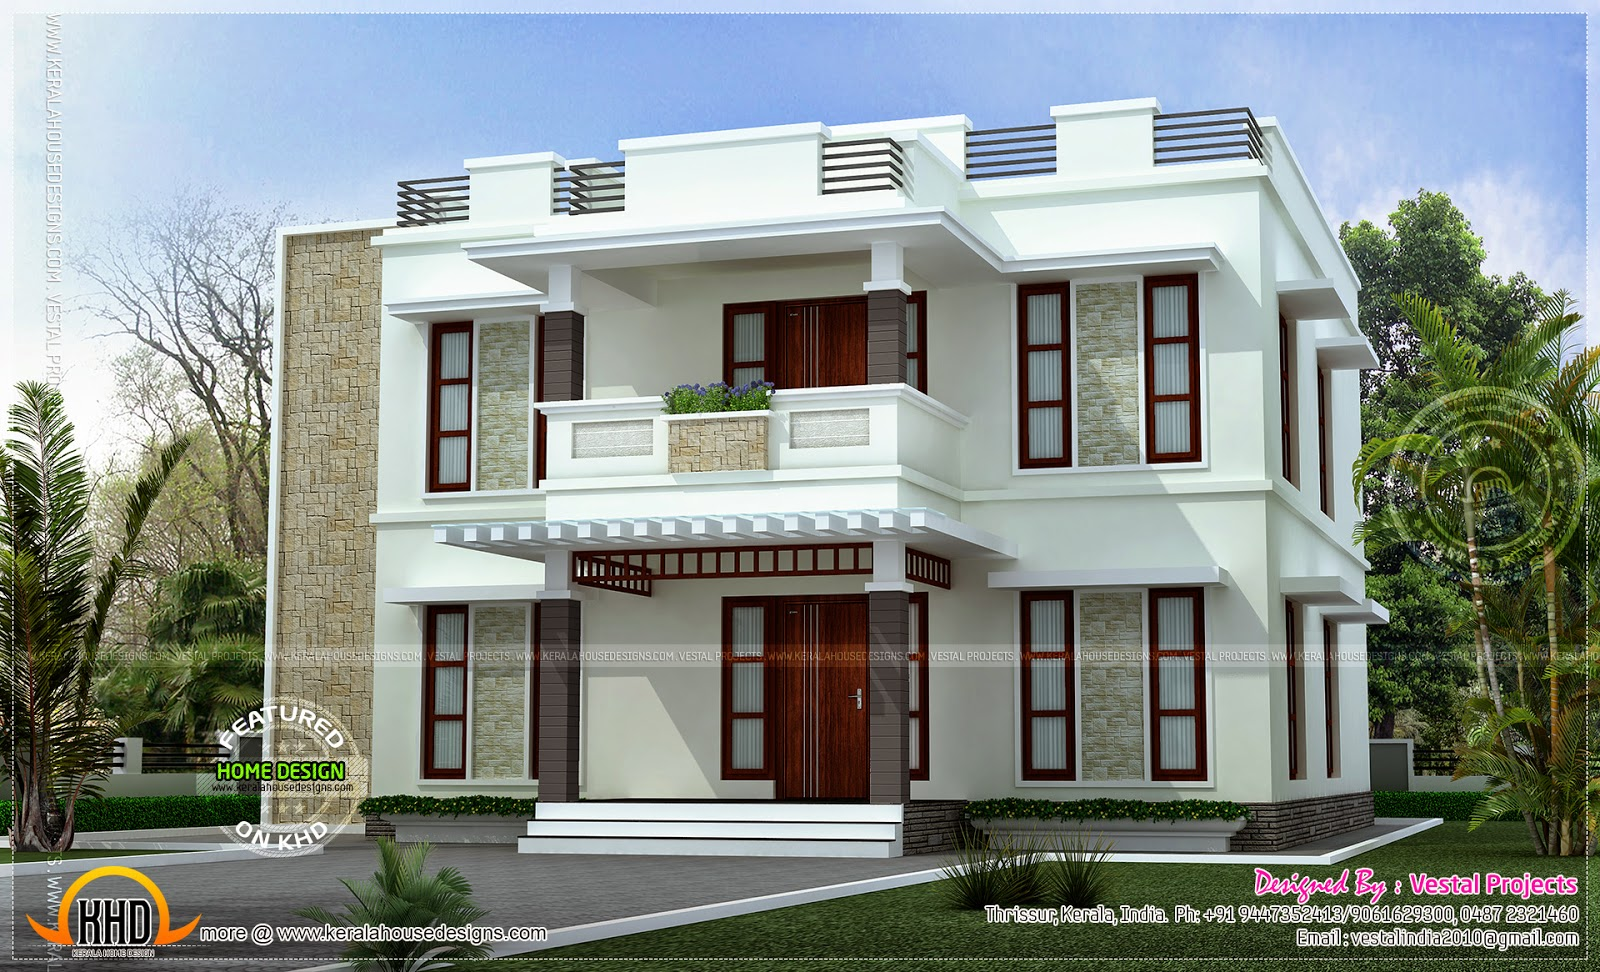 Beautiful Home Design Flat Roof Style Kerala Home Design And Floor Plans